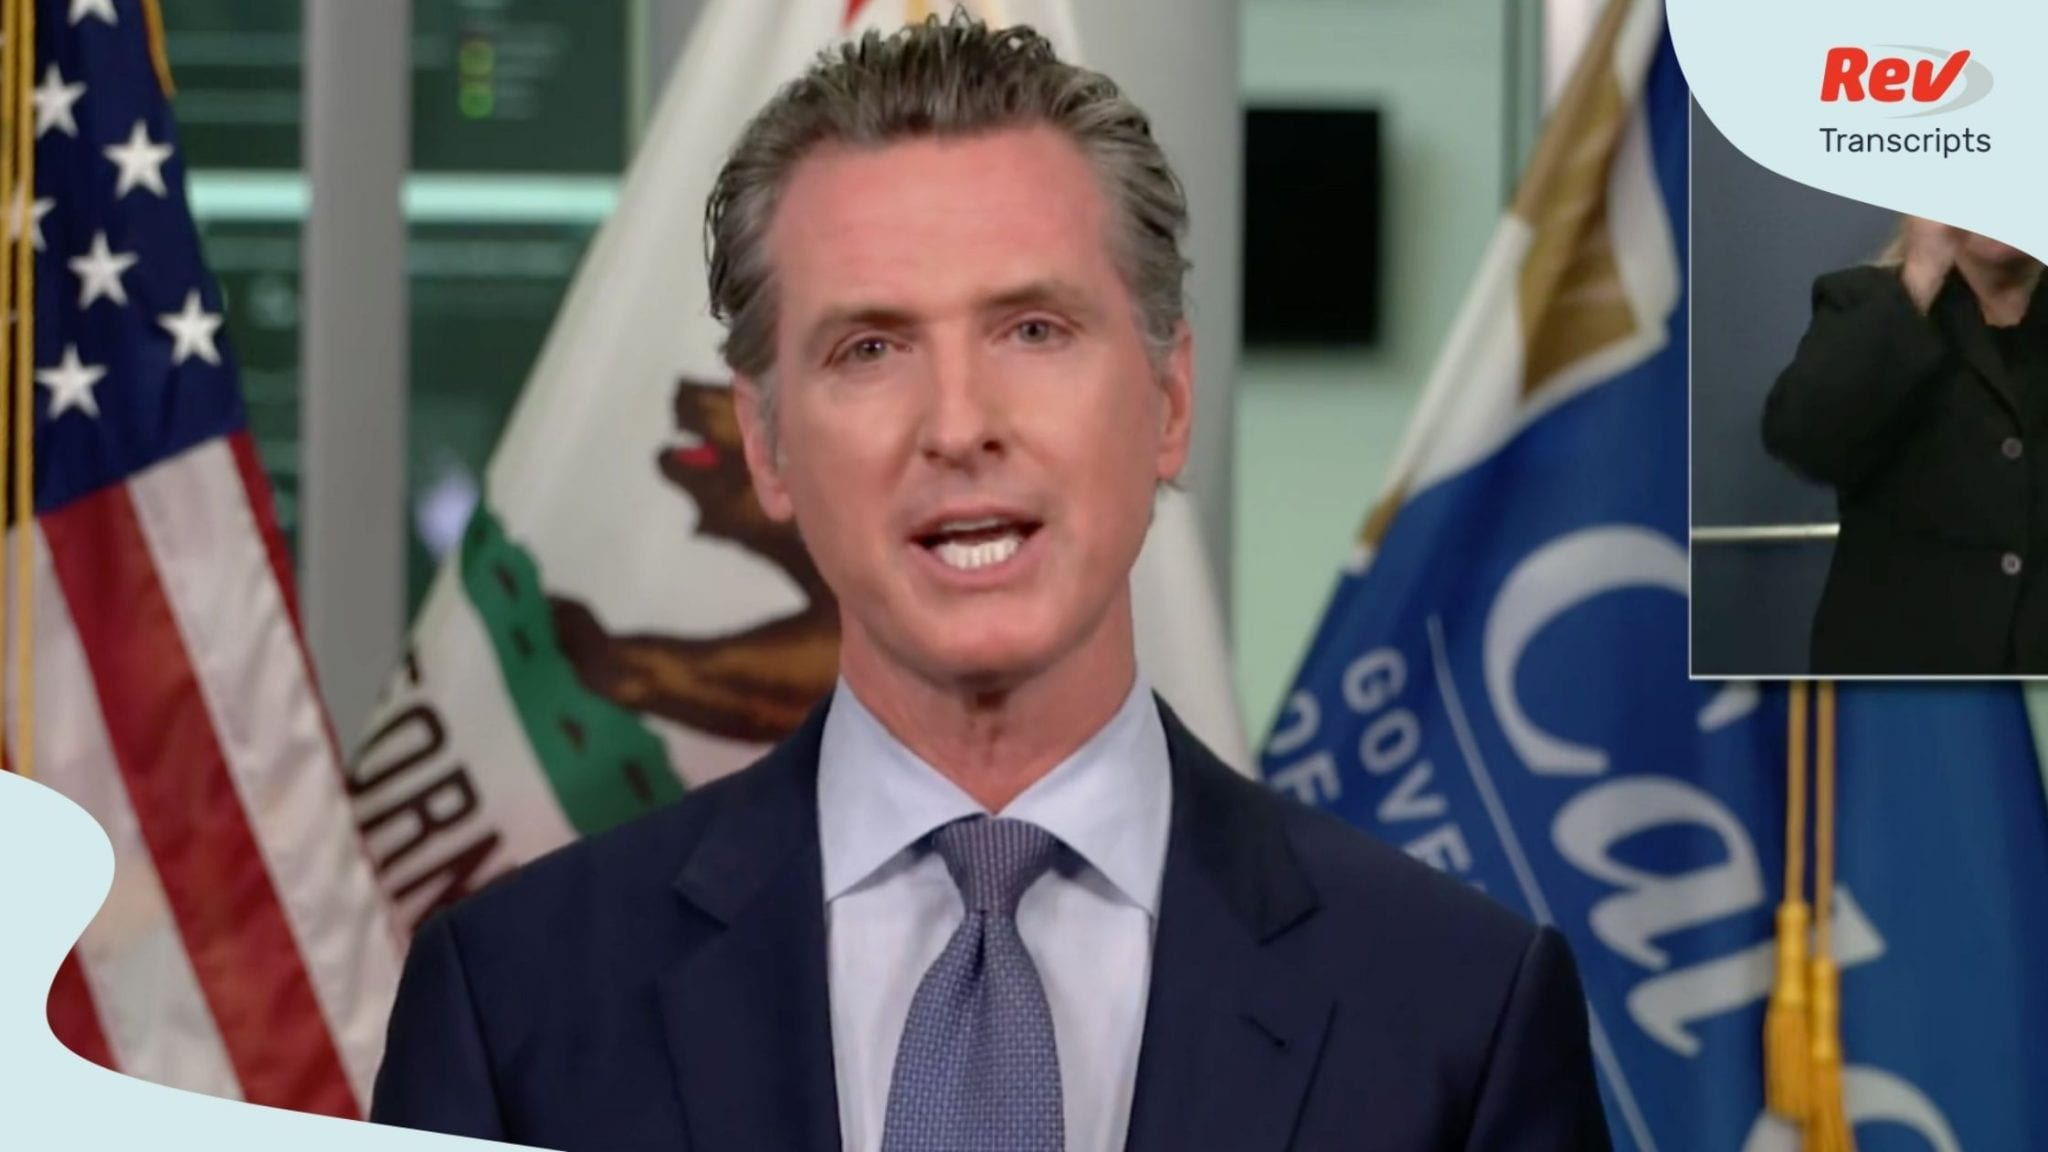 California Governor Gavin Newsom August 10 Press Conference Transcript